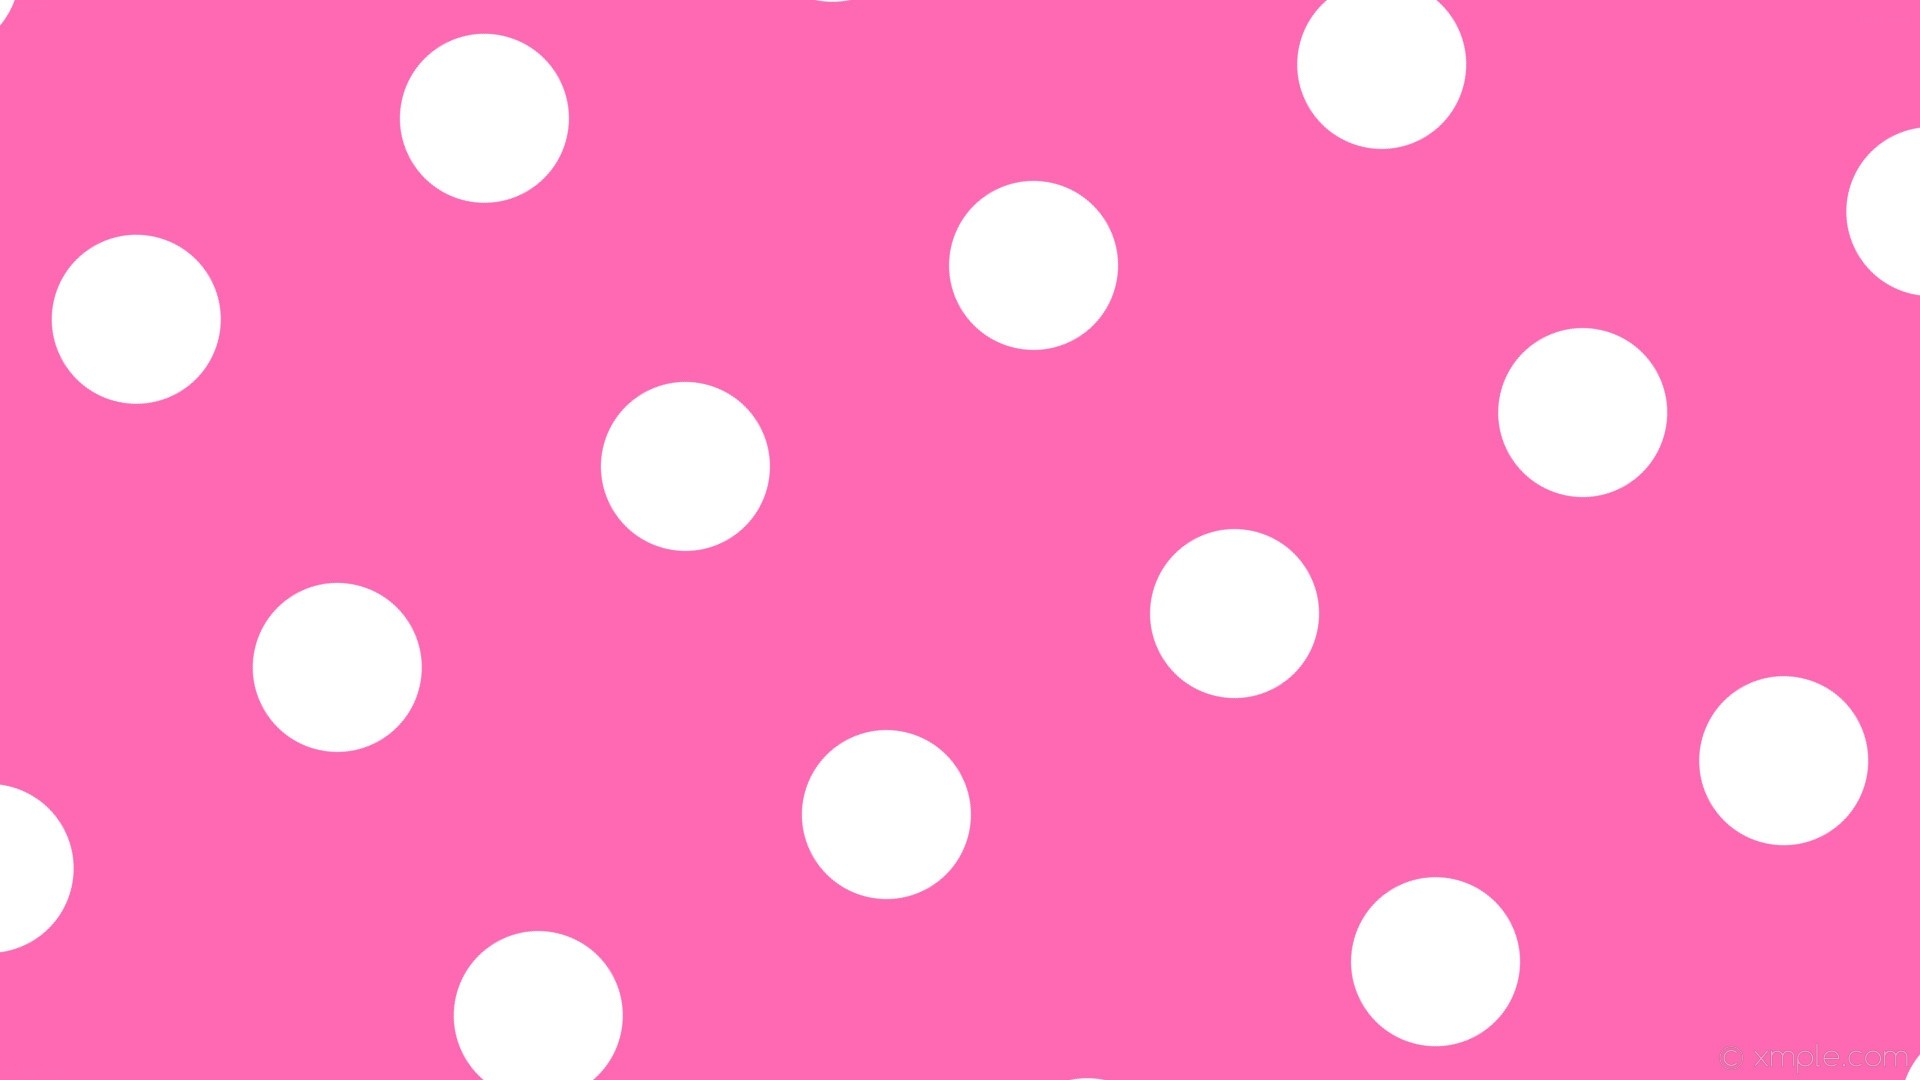 Polka Dot hd desktop wallpaper